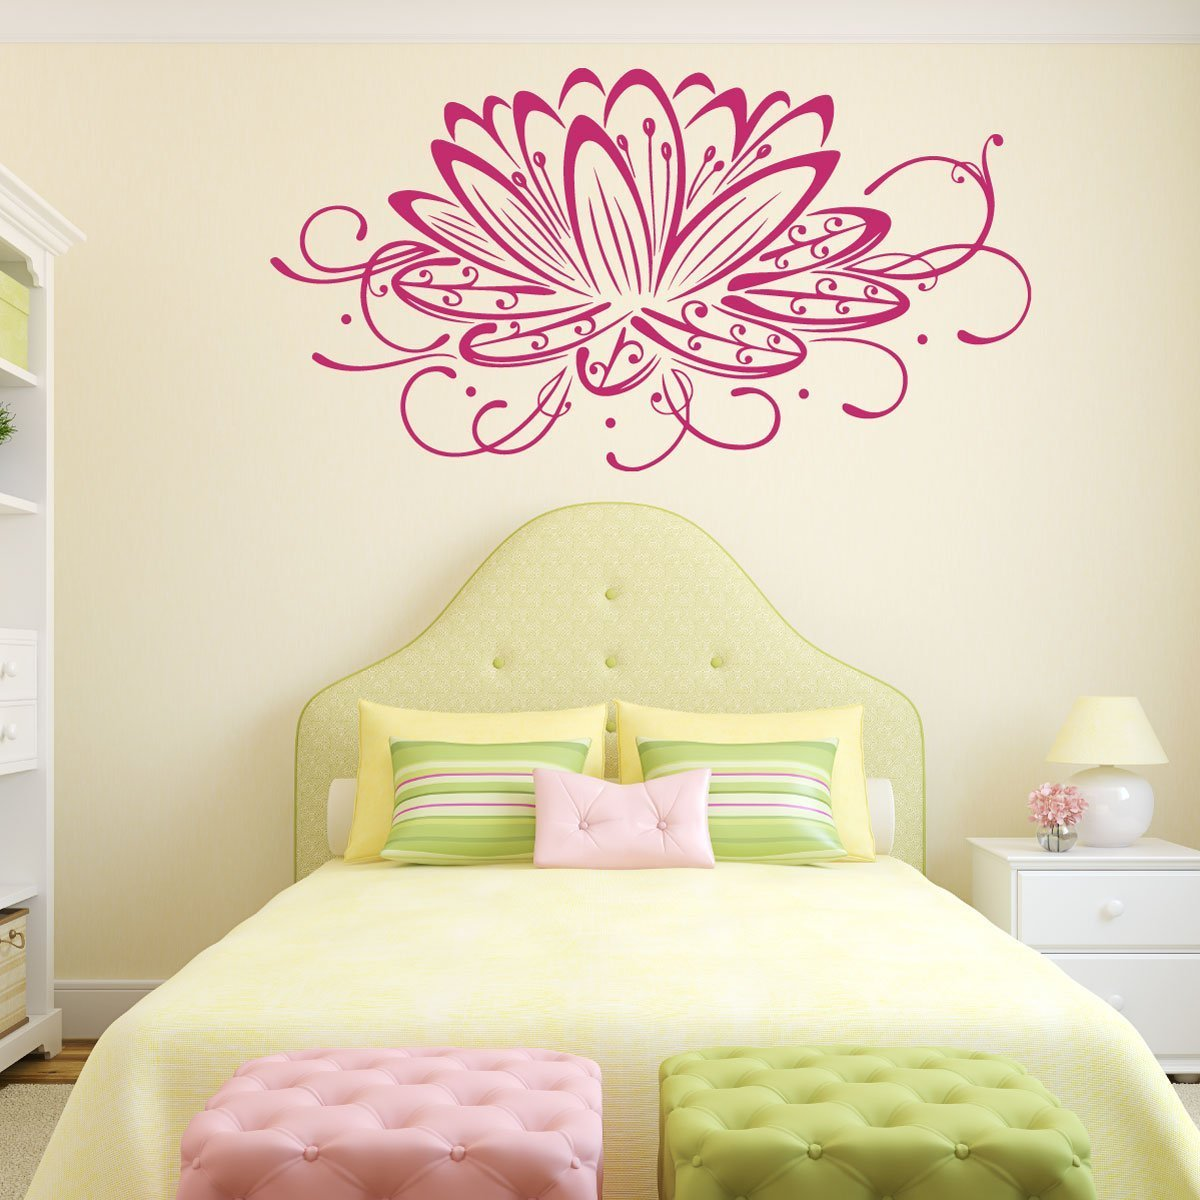 Lotus Flower Wall Decal Flower Decals Customvinyldecor Com